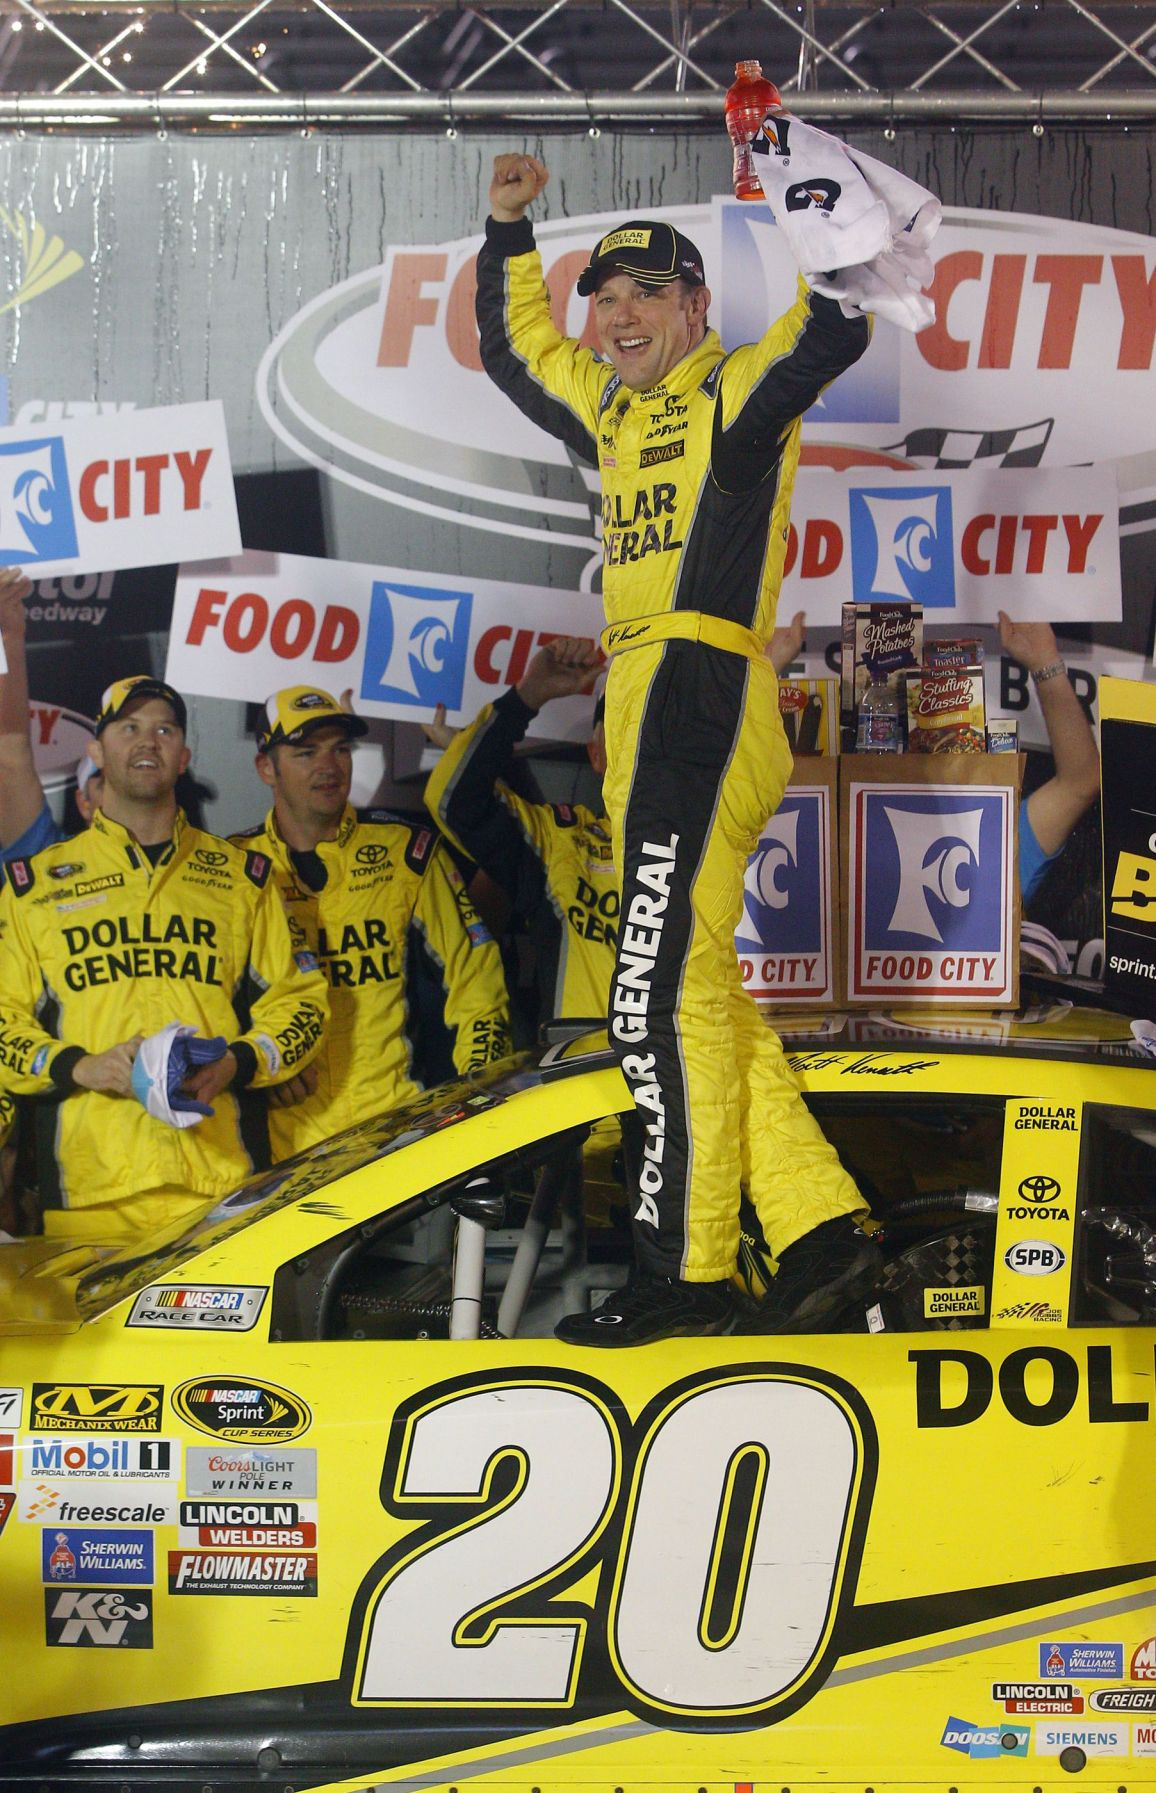 Kenseth ends 51-race drought with win at rainy Bristol